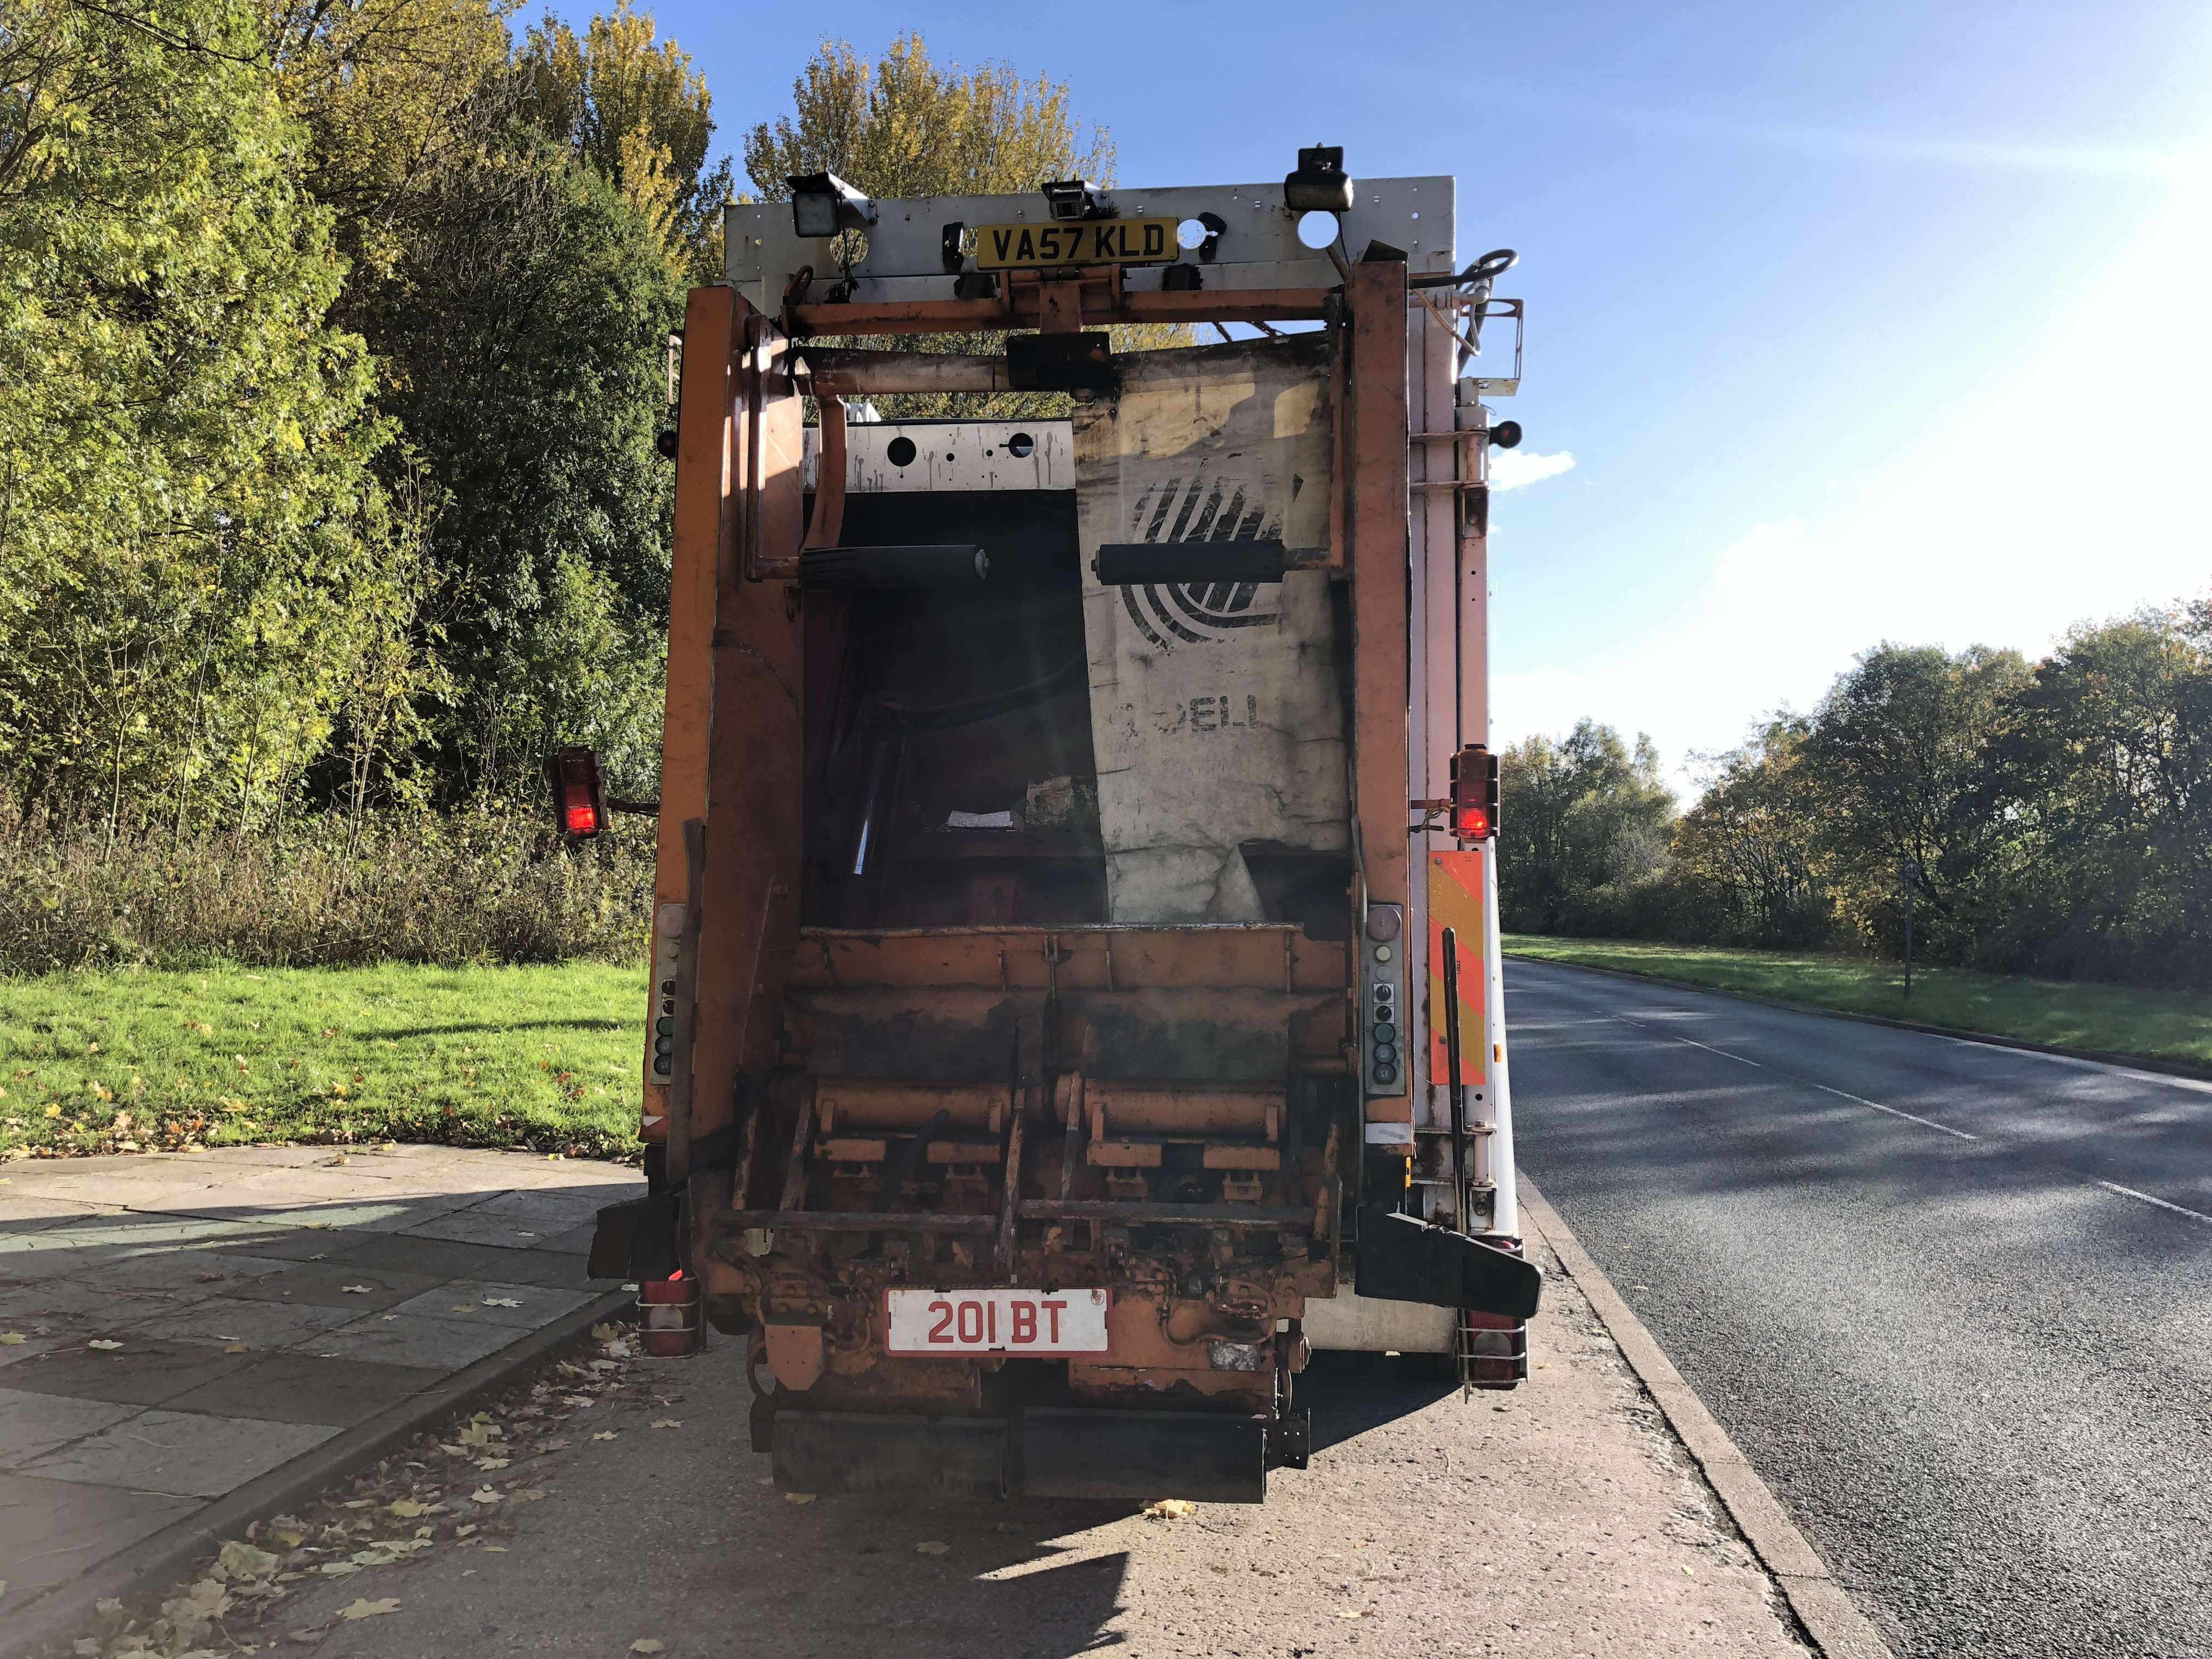 2008 Dennis 4x2 narrow track refuse collection truck for sale